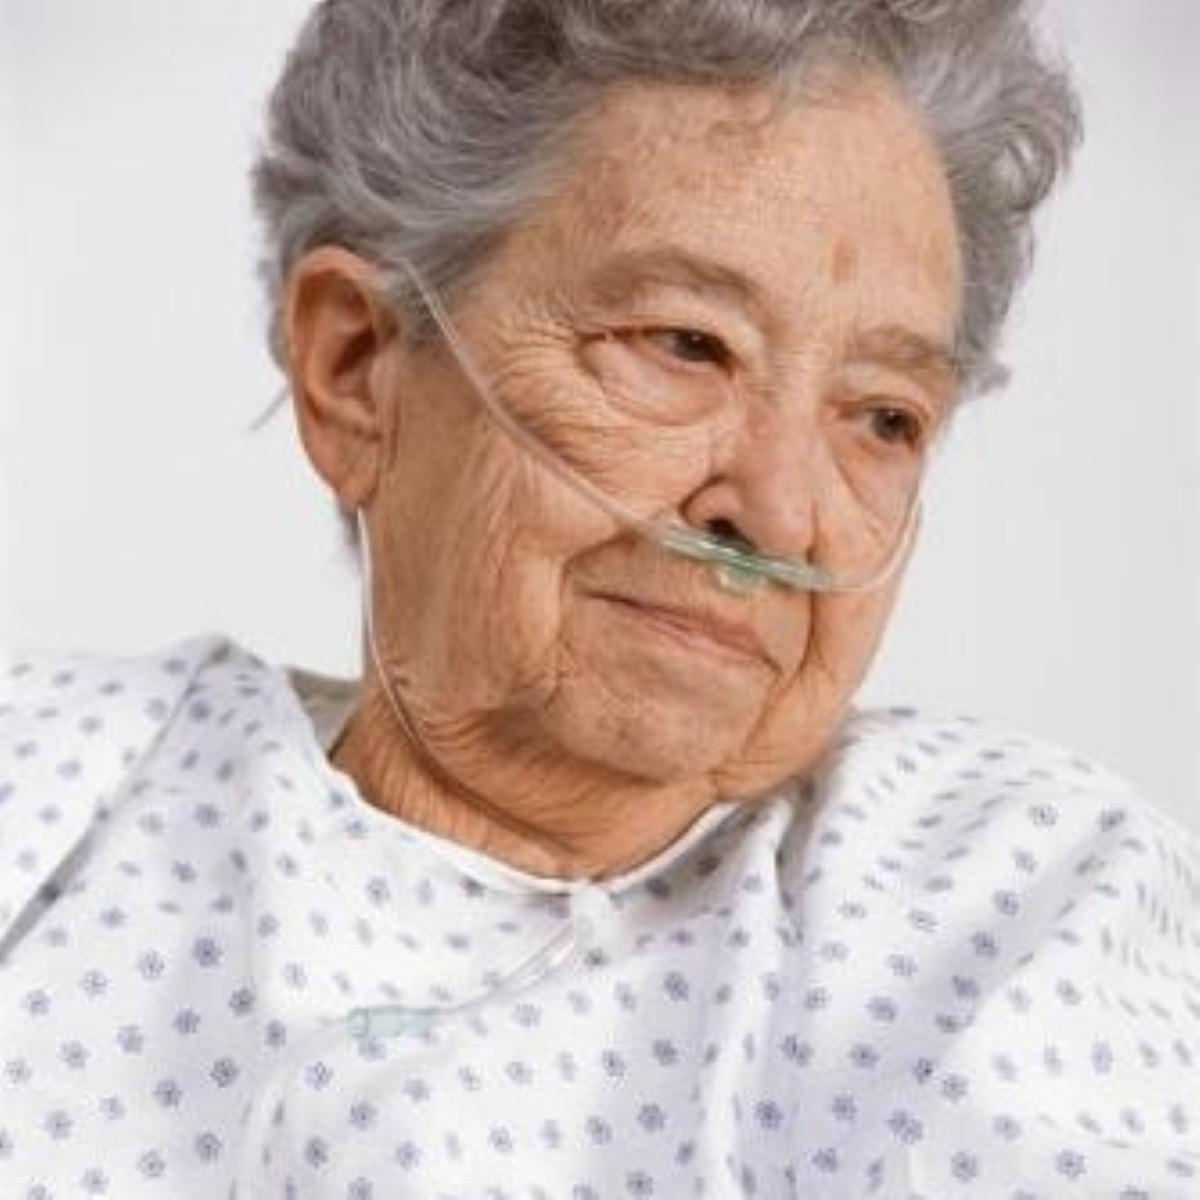 Borna disease does not cause dementia, study finds